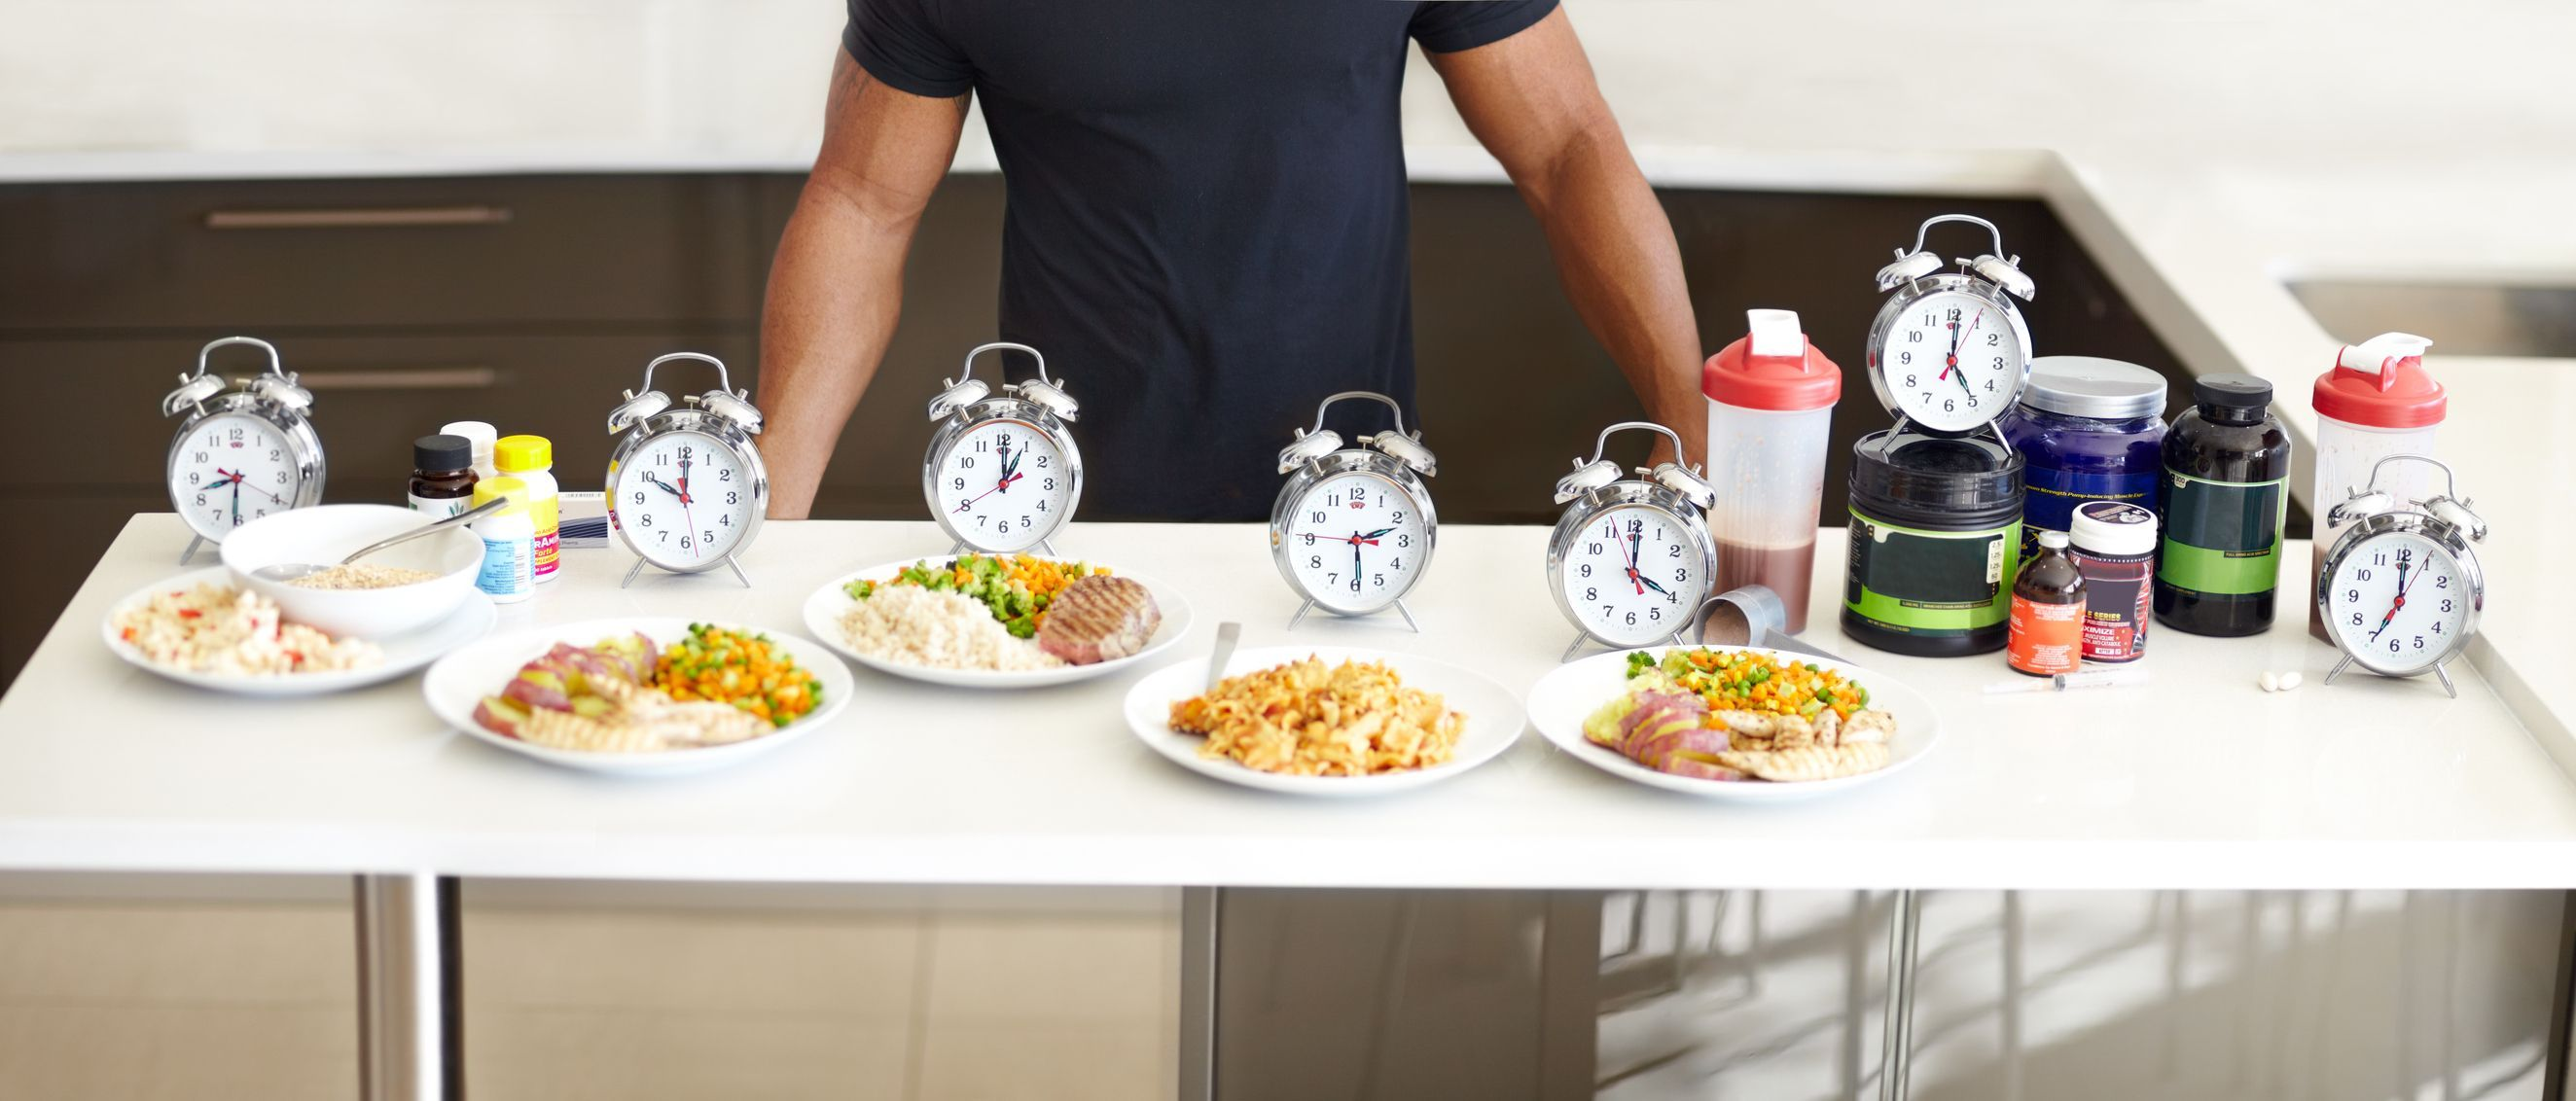 7 Intermittent Fasting Benefits That Aren't Weight Loss